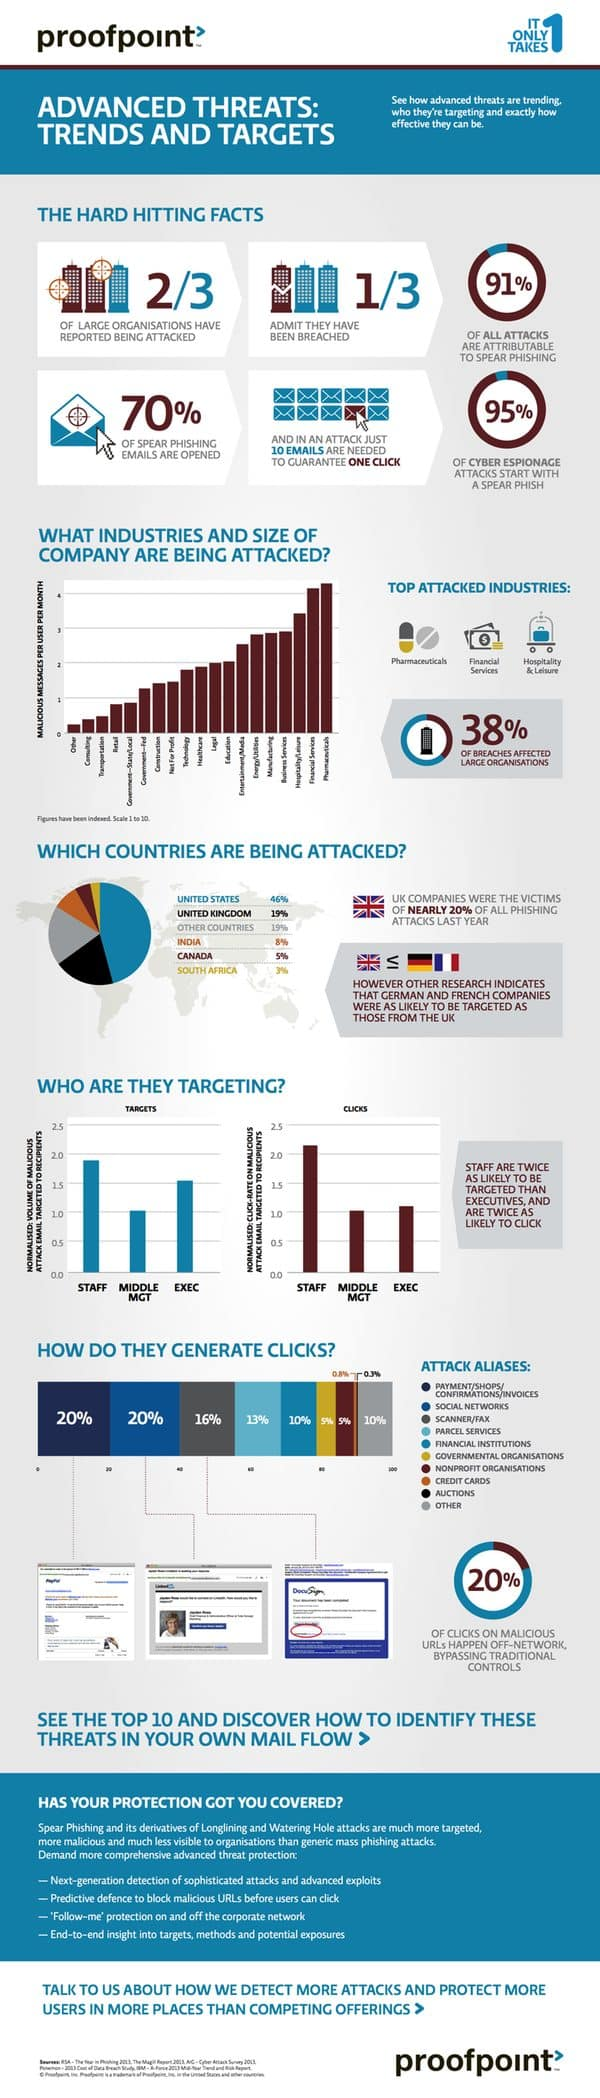 Proofpoint infographic